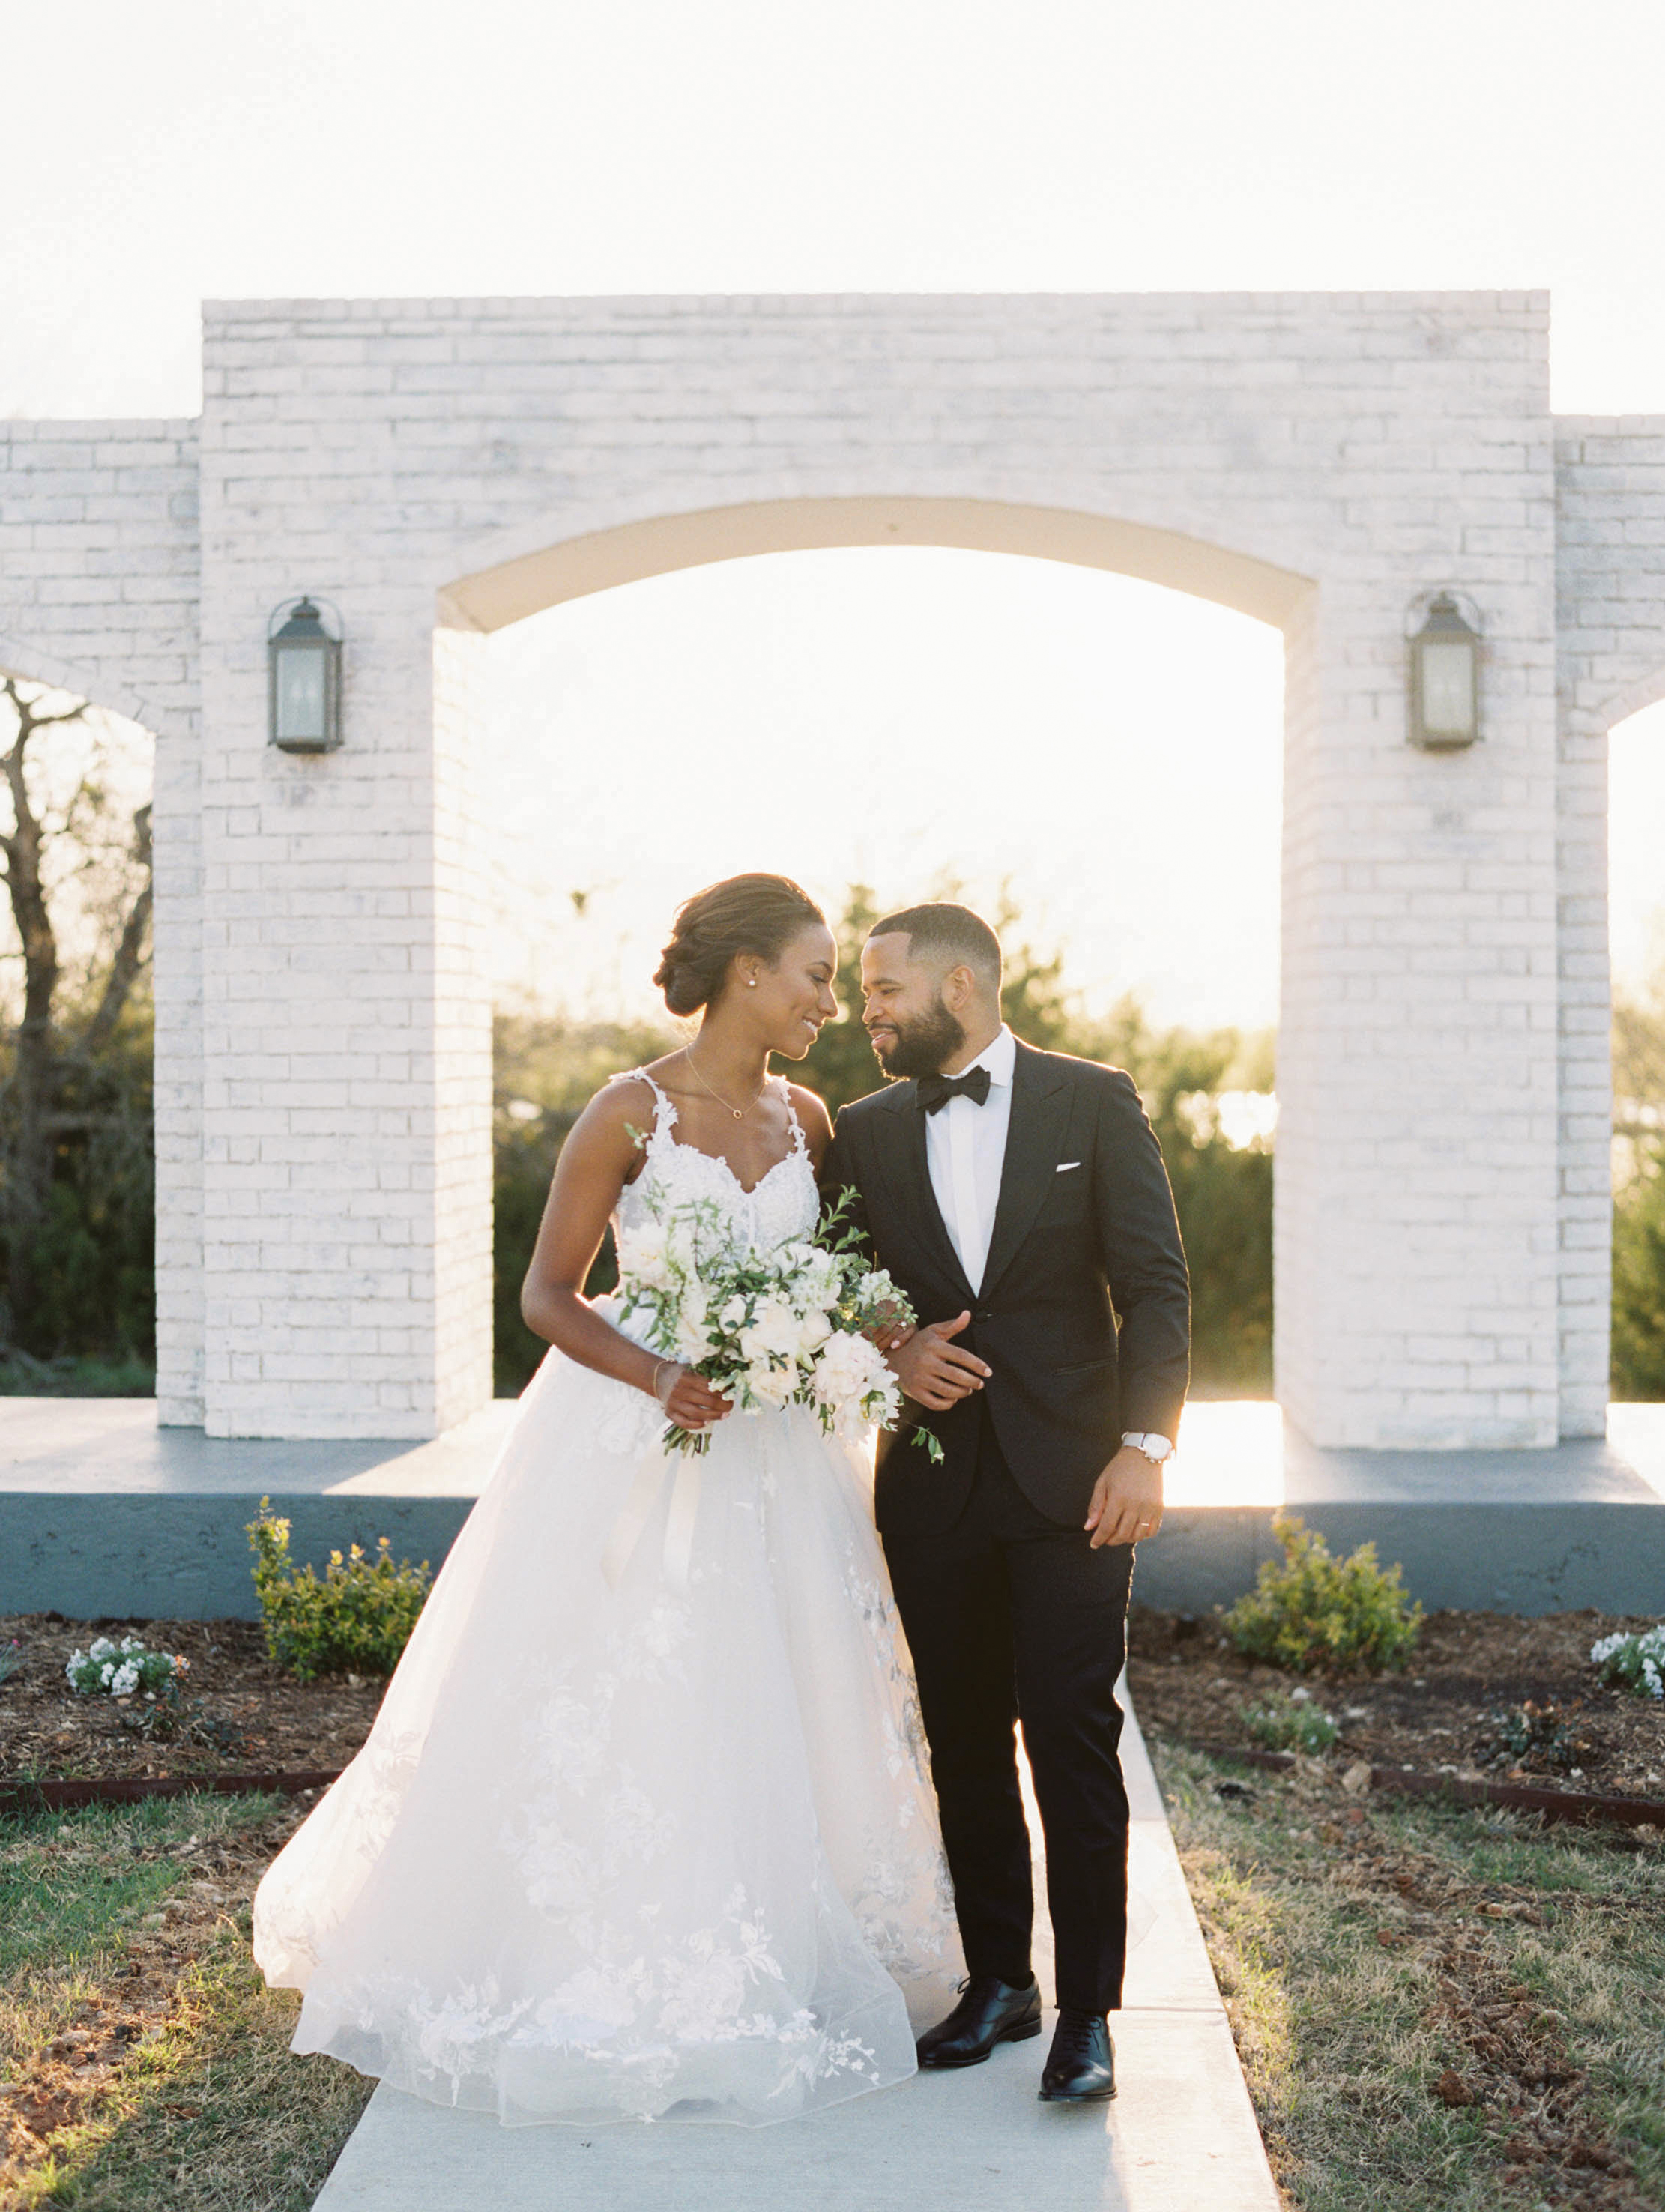 This Texas Wedding Was Truly All About Love